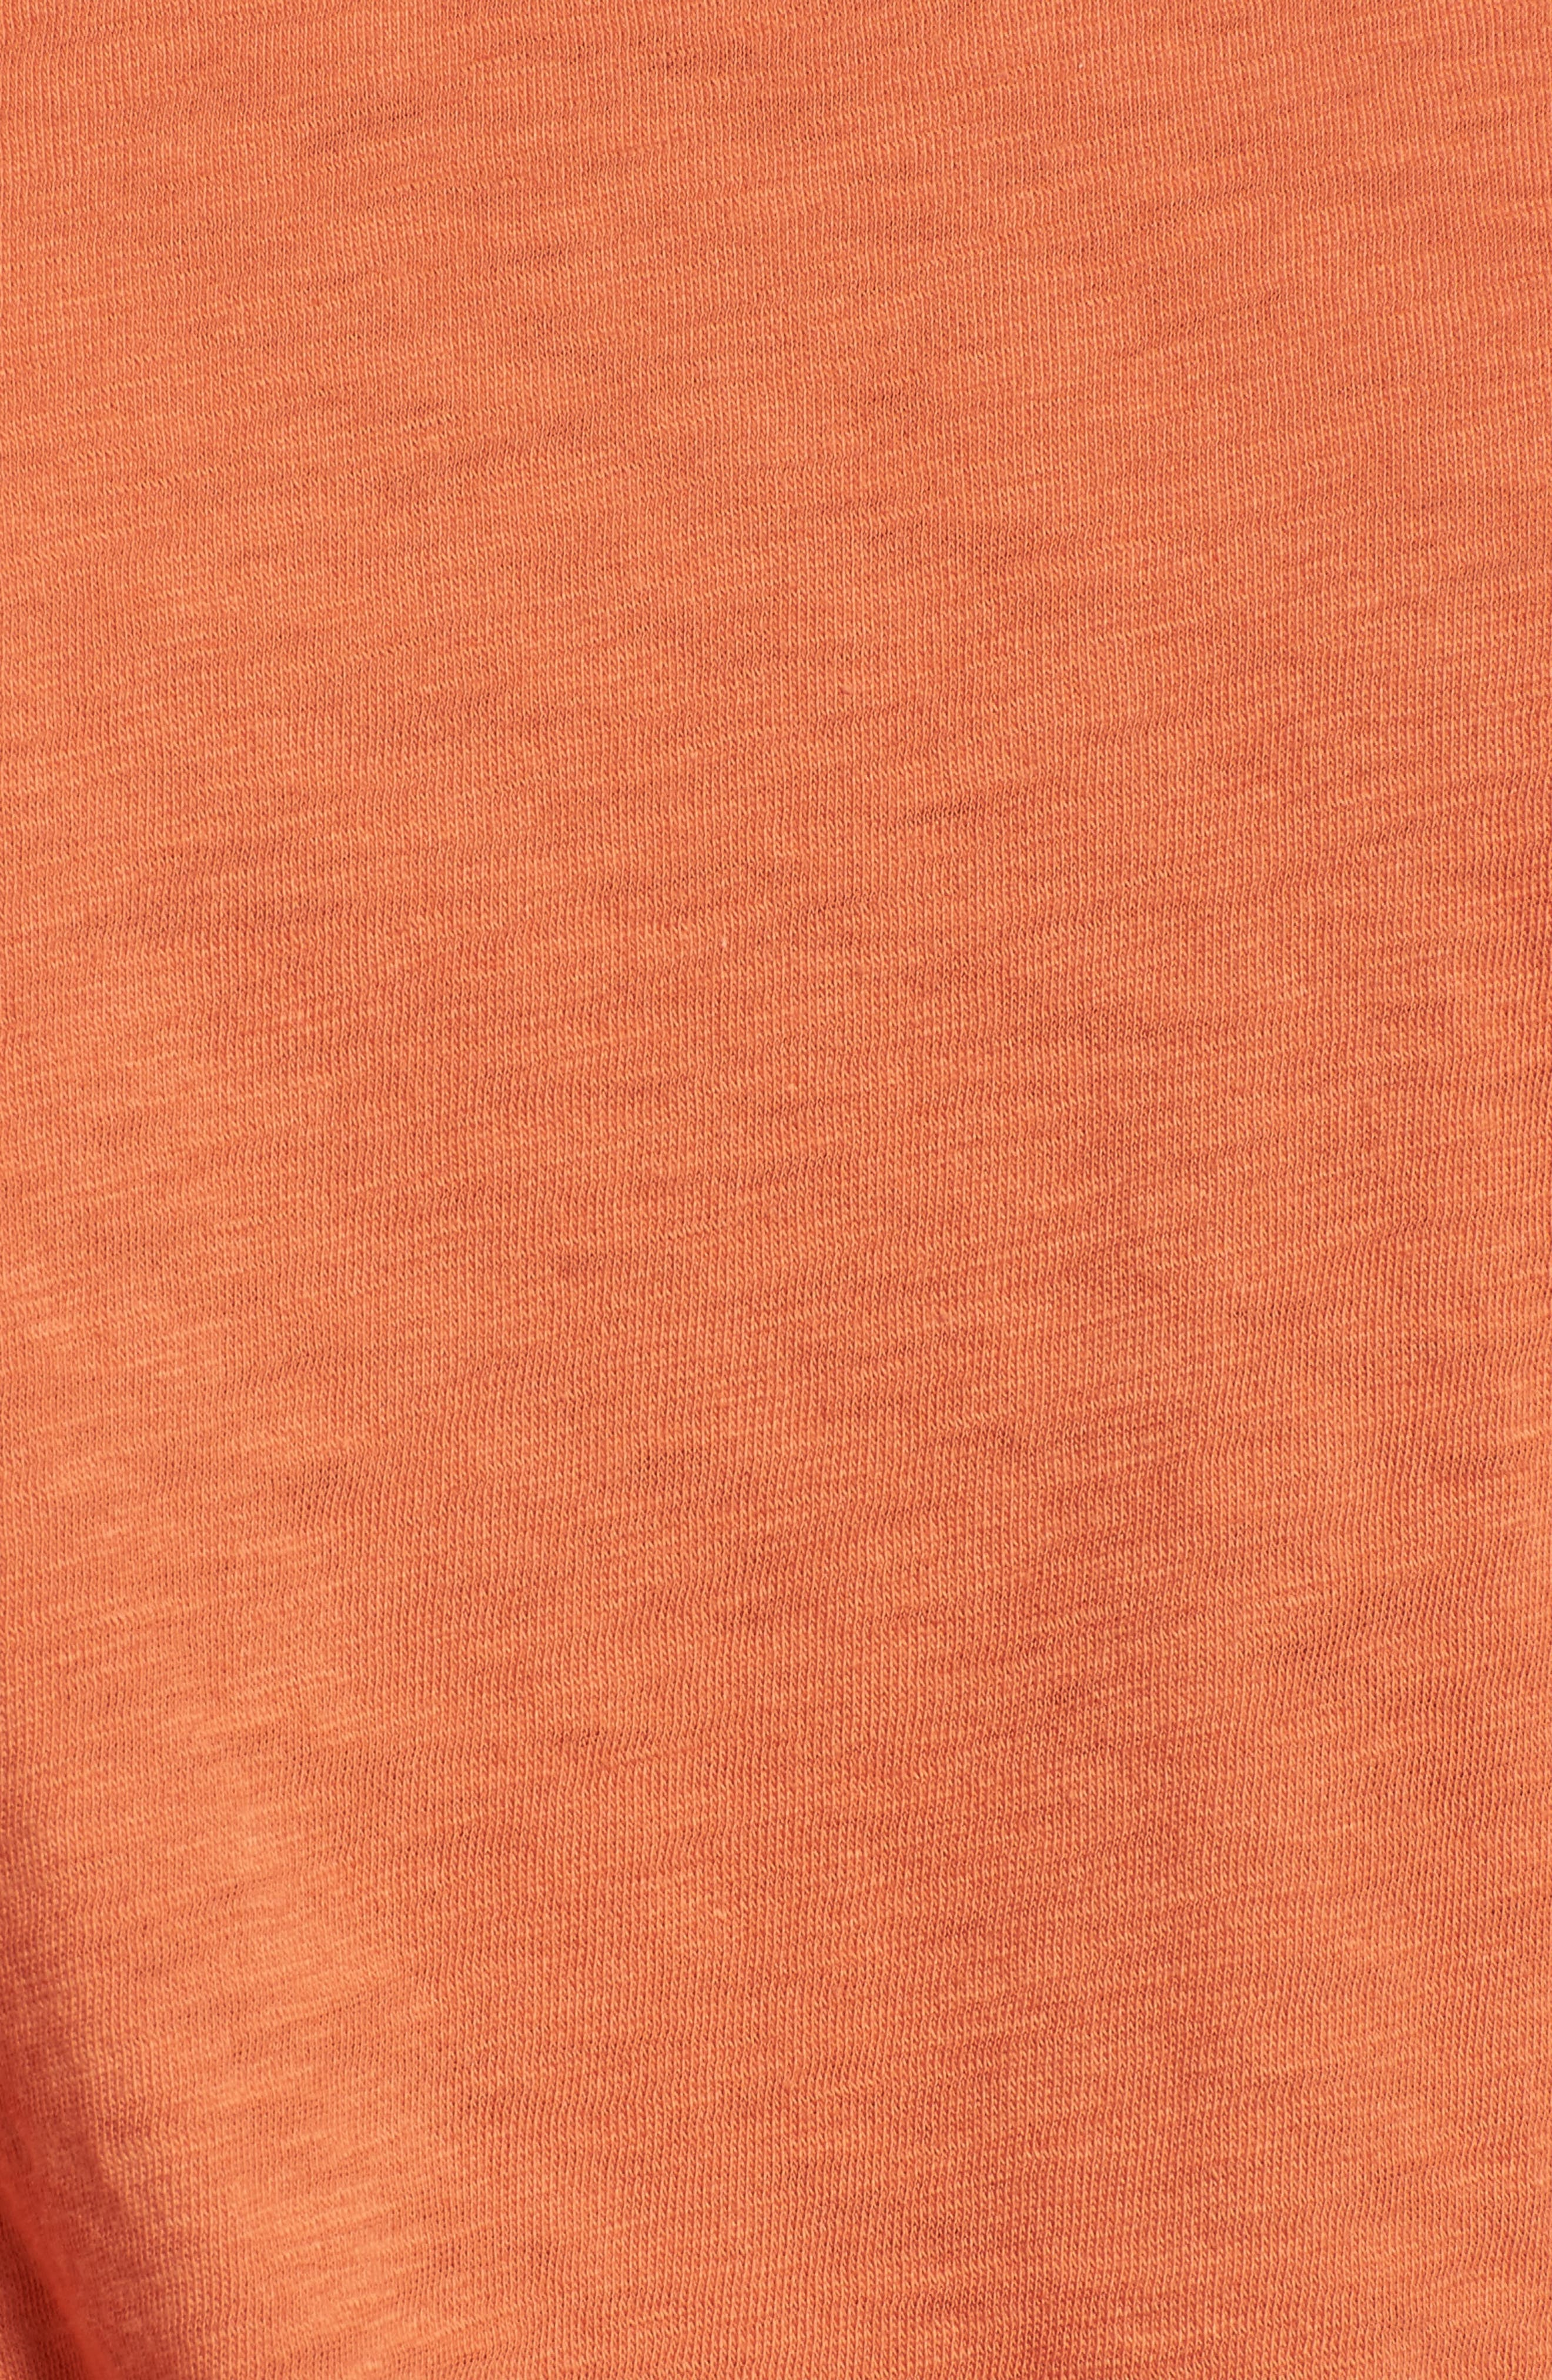 Knotted Tee,                             Alternate thumbnail 55, color,